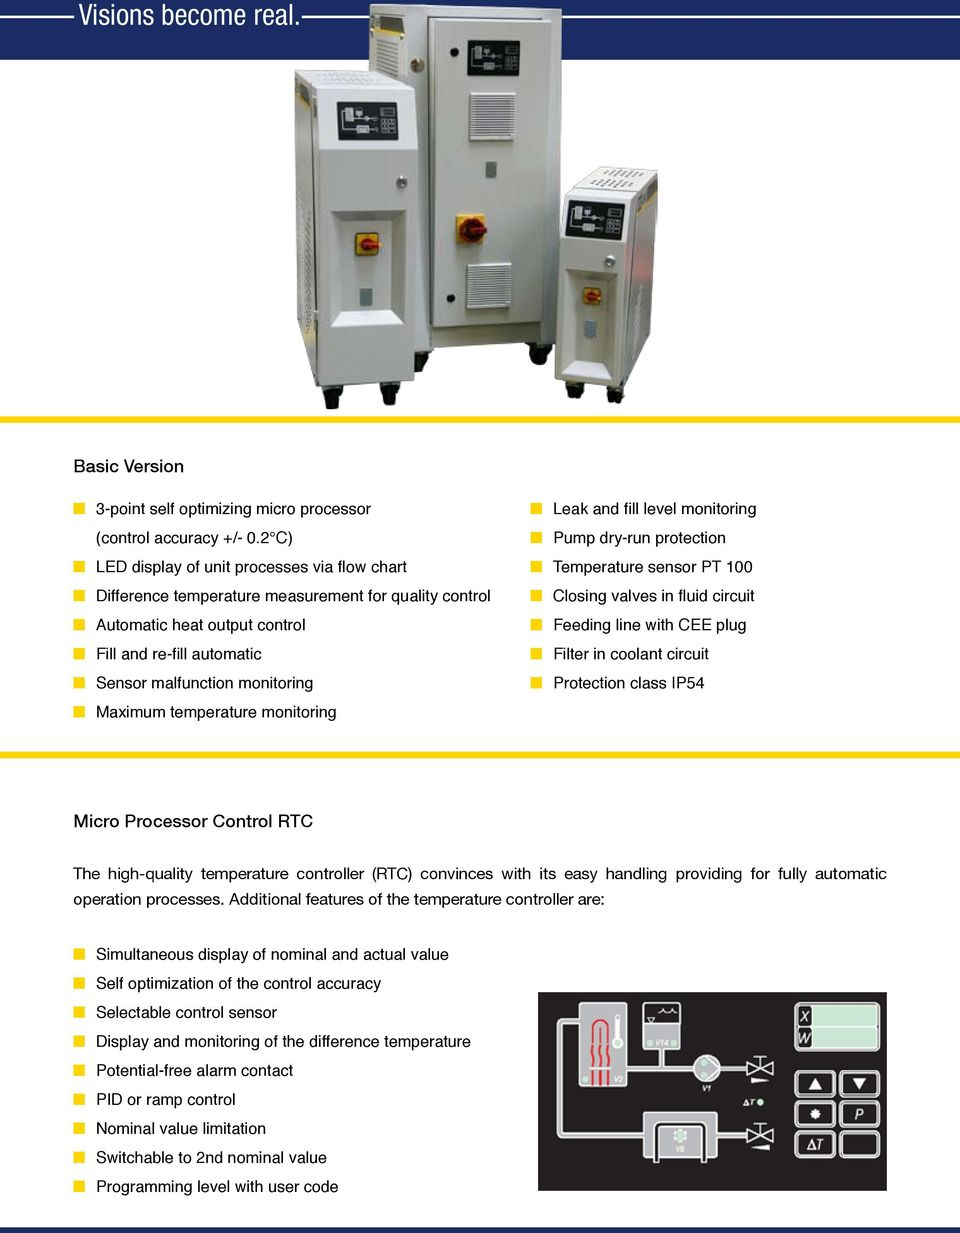 Automatic heat output control n Feeding line with CEE plug n Fill and re-fill automatic n Filter in coolant circuit n Sensor malfunction monitoring n Protection class IP54 n Maximum temperature